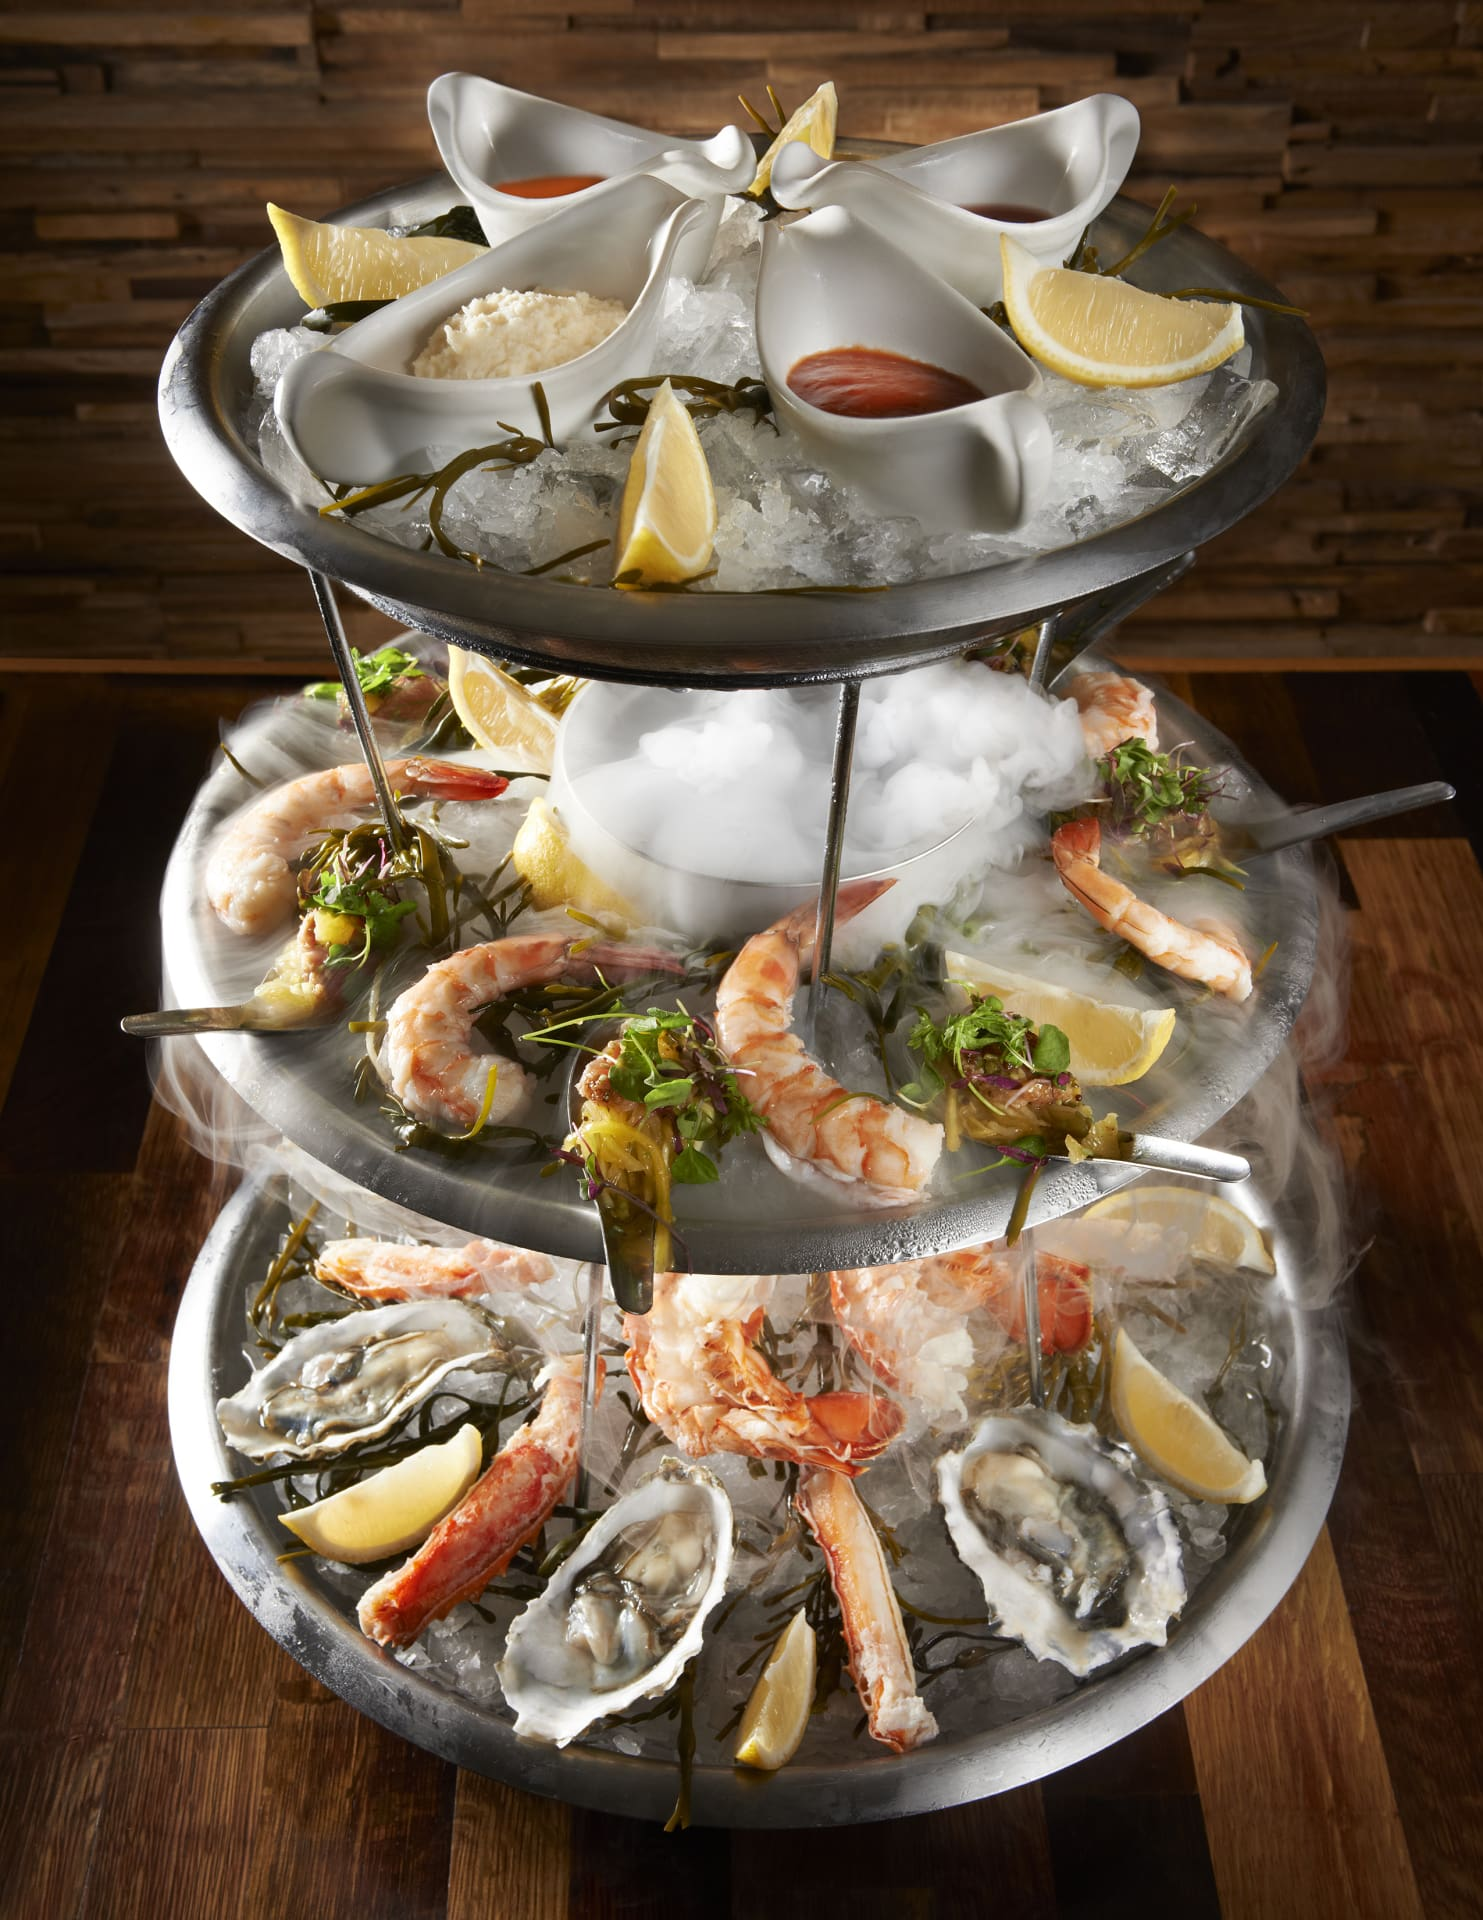 The Winery Seafood Tower